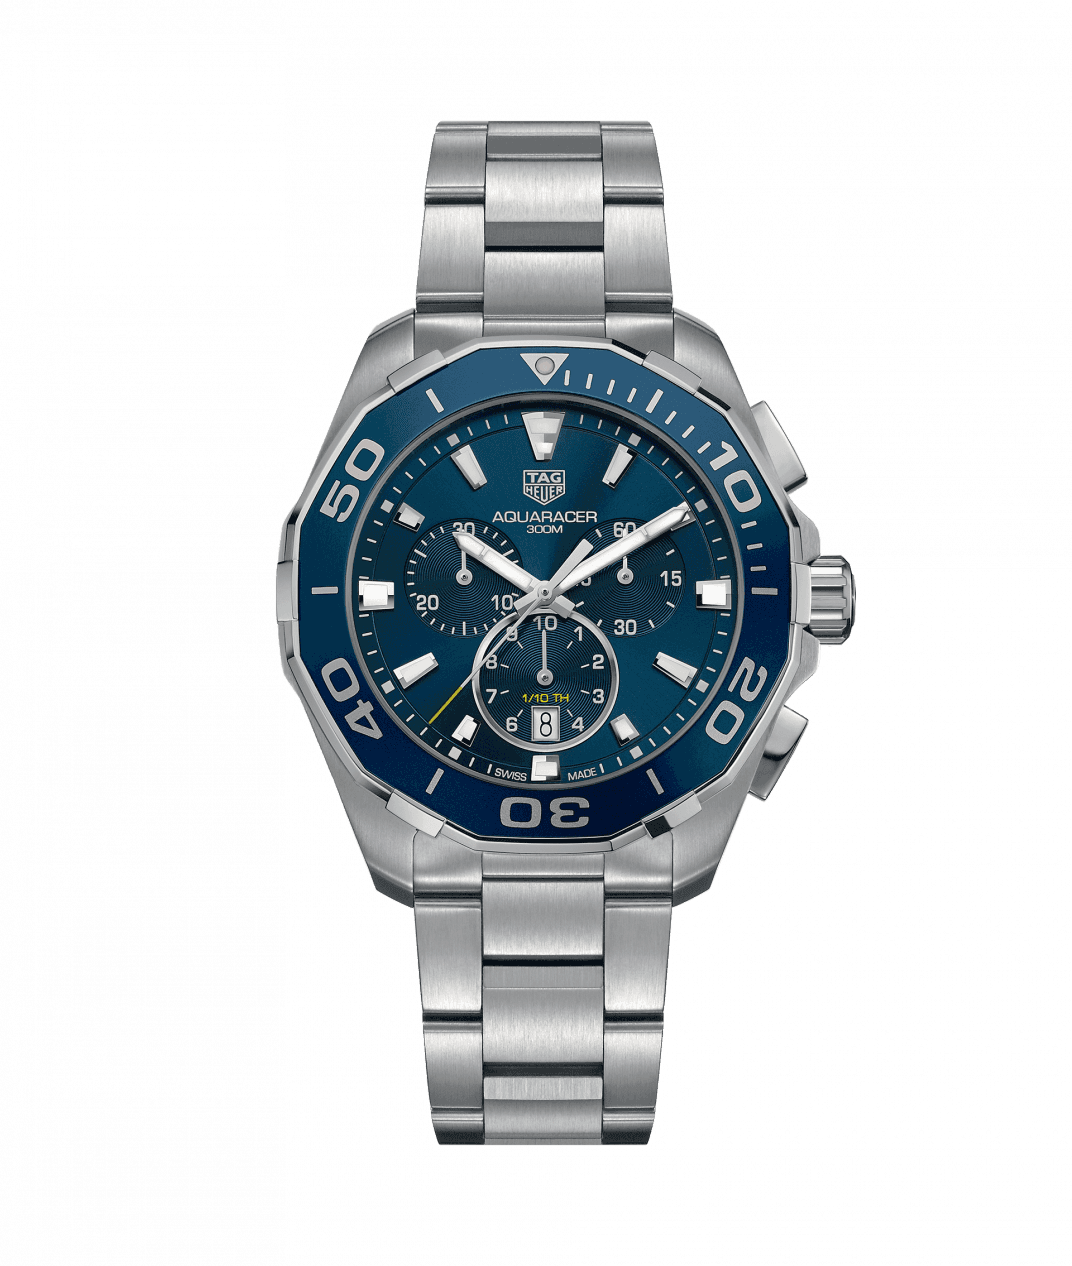 Aquaracer Quartz (43mm)